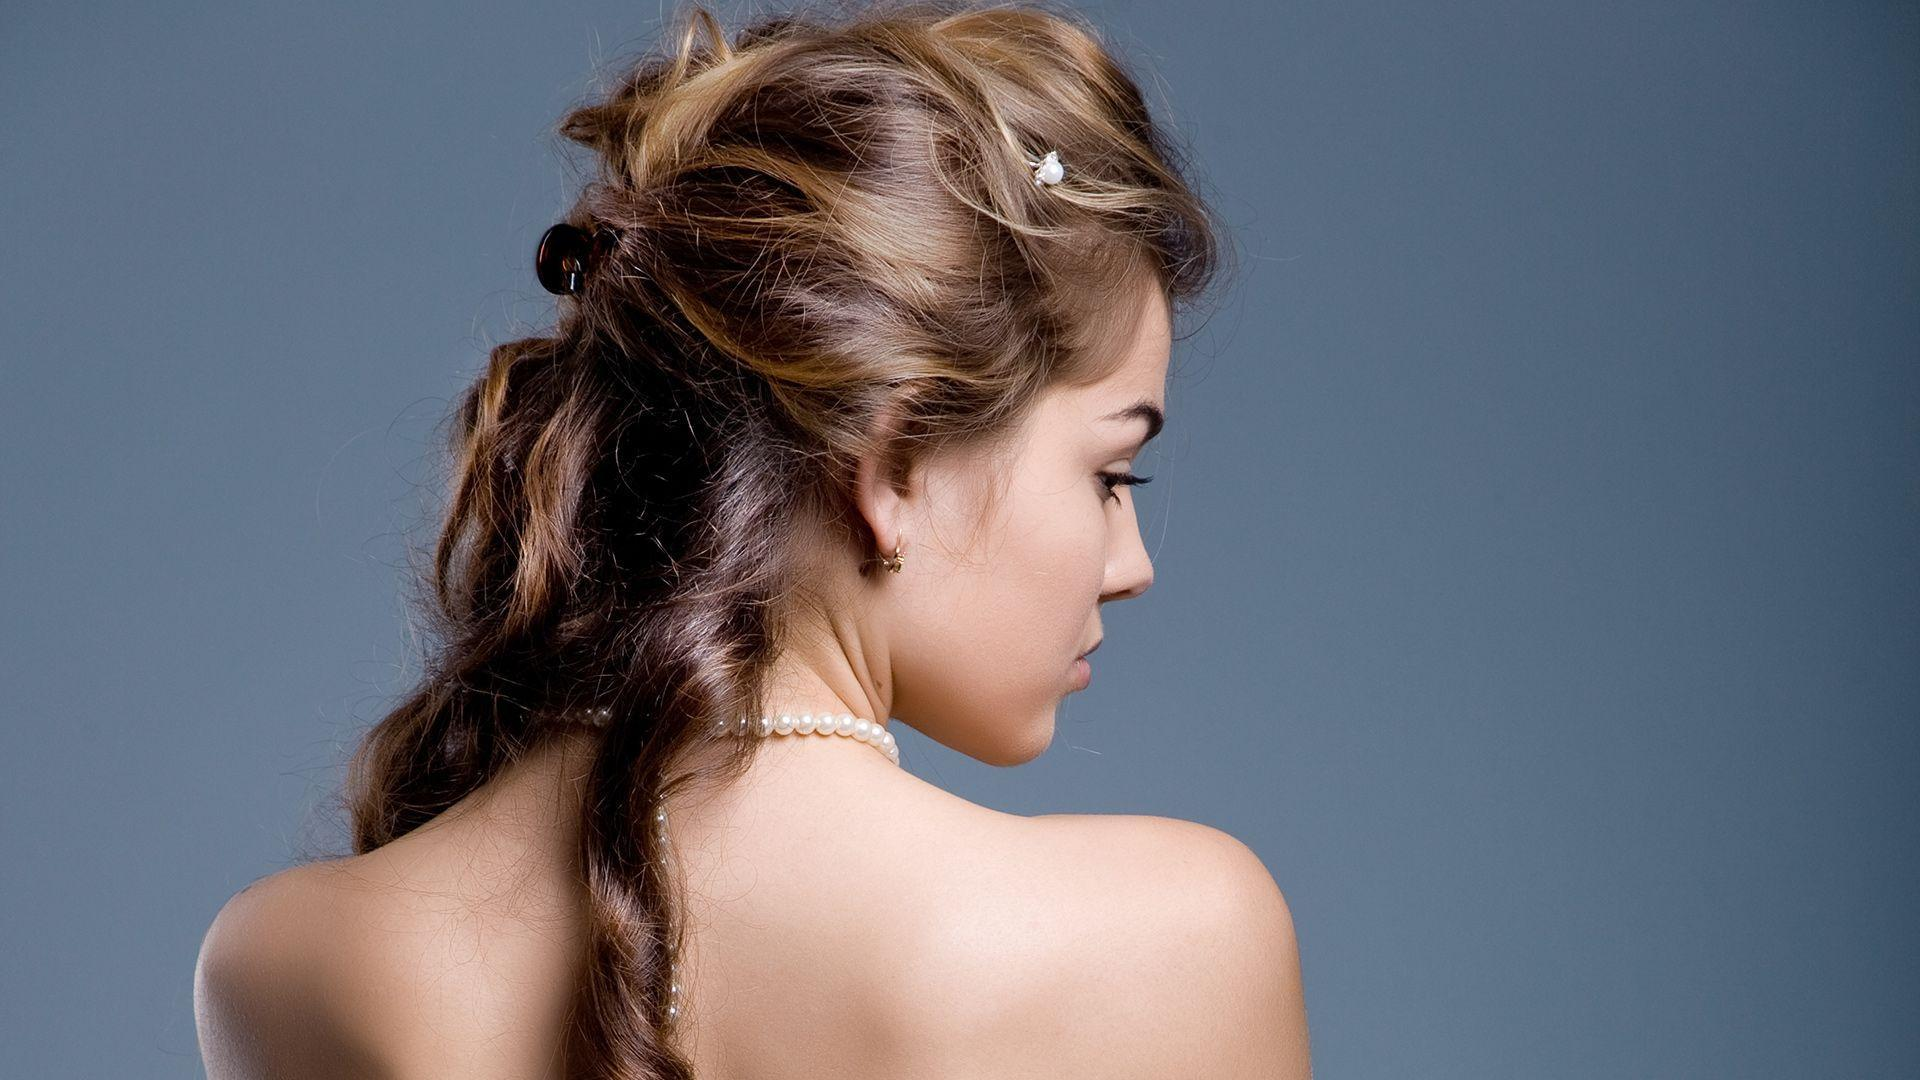 Hair Styles Wallpapers Wallpaper Cave